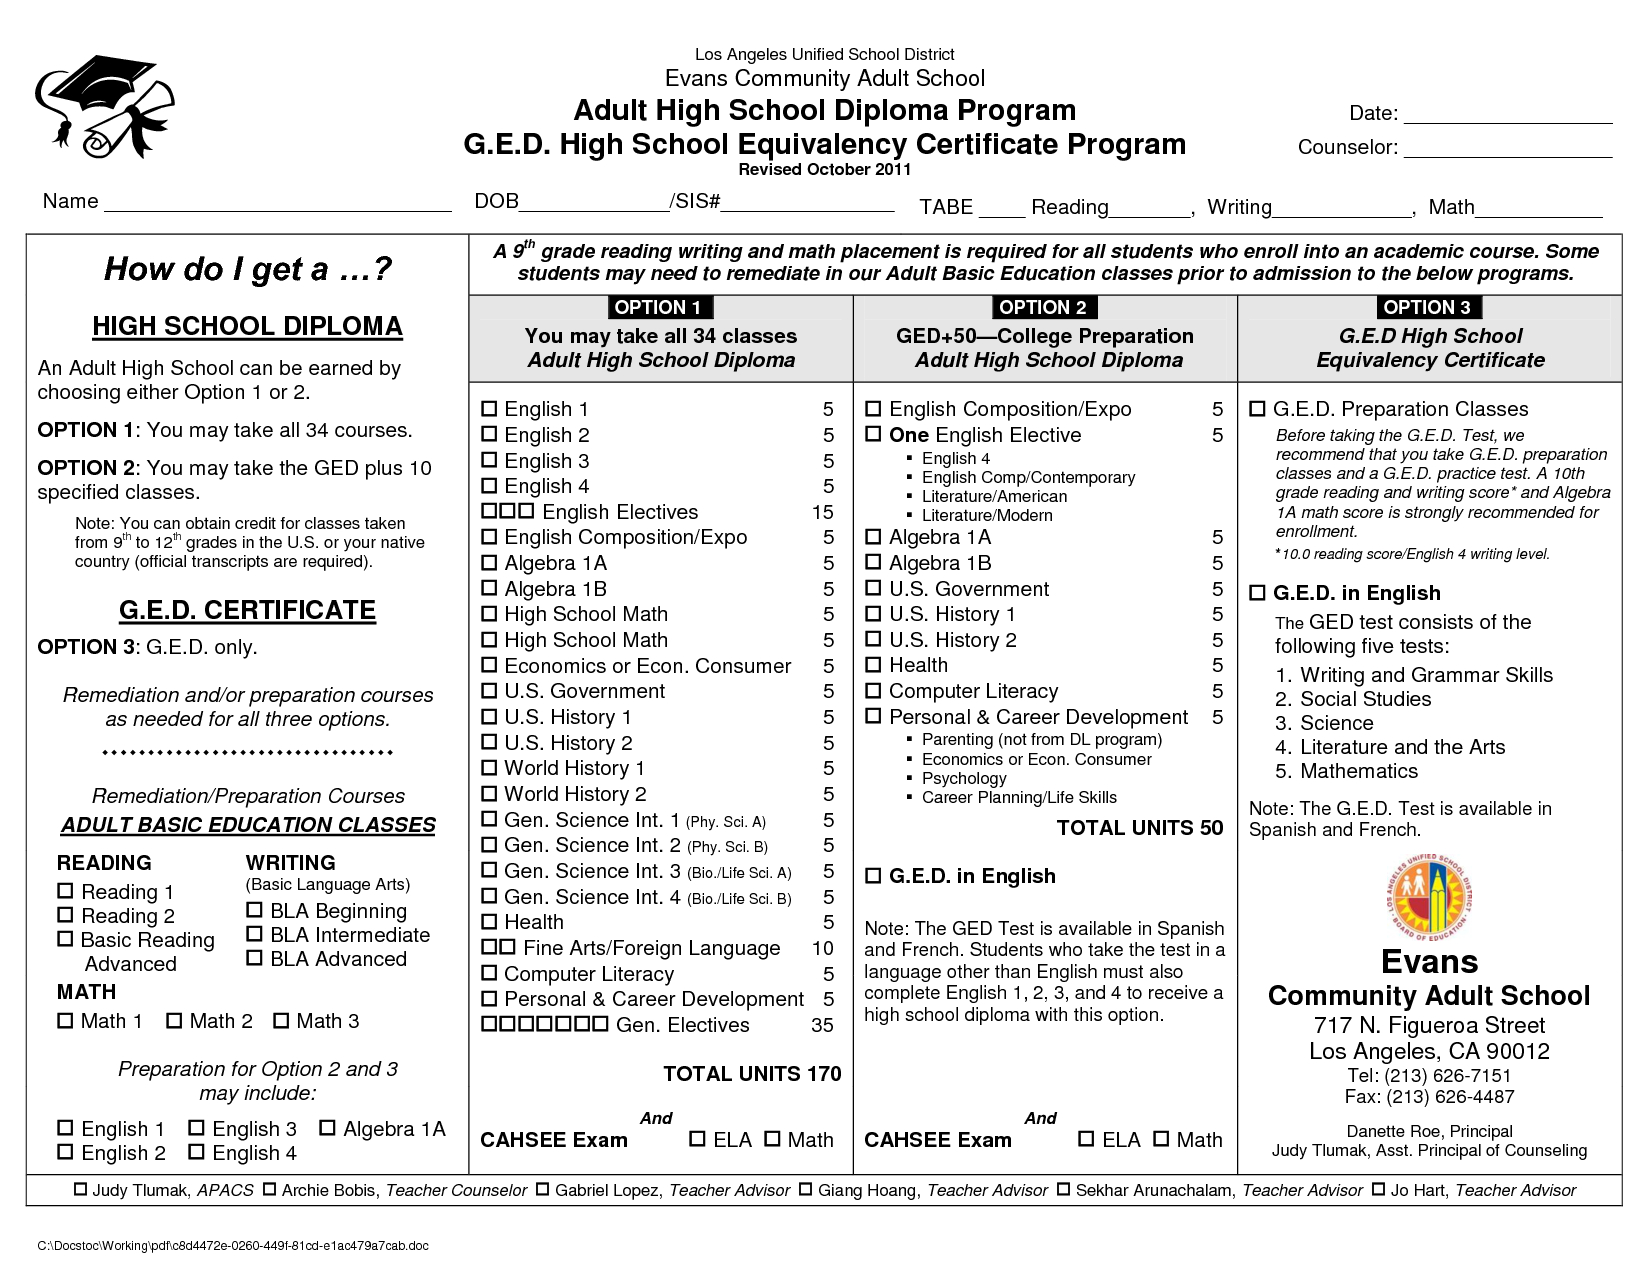 Kindergarten Free Printable Ged Maths Contemporarys Social Studies - Free Printable Ged Practice Test With Answer Key